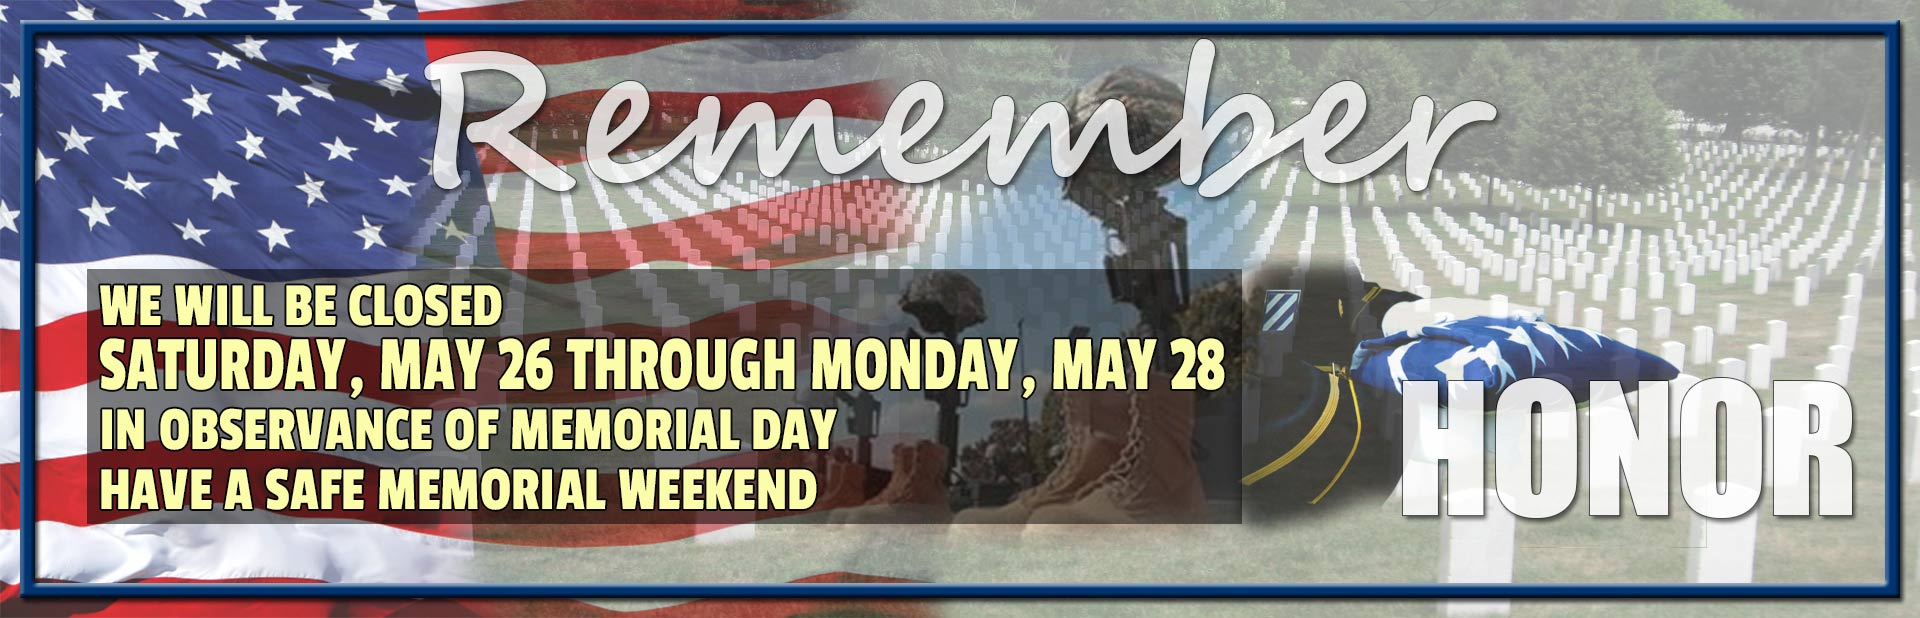 We will be closed Saturday, May 26 through Monday, May 28 in observance of the Memorial Day holiday.